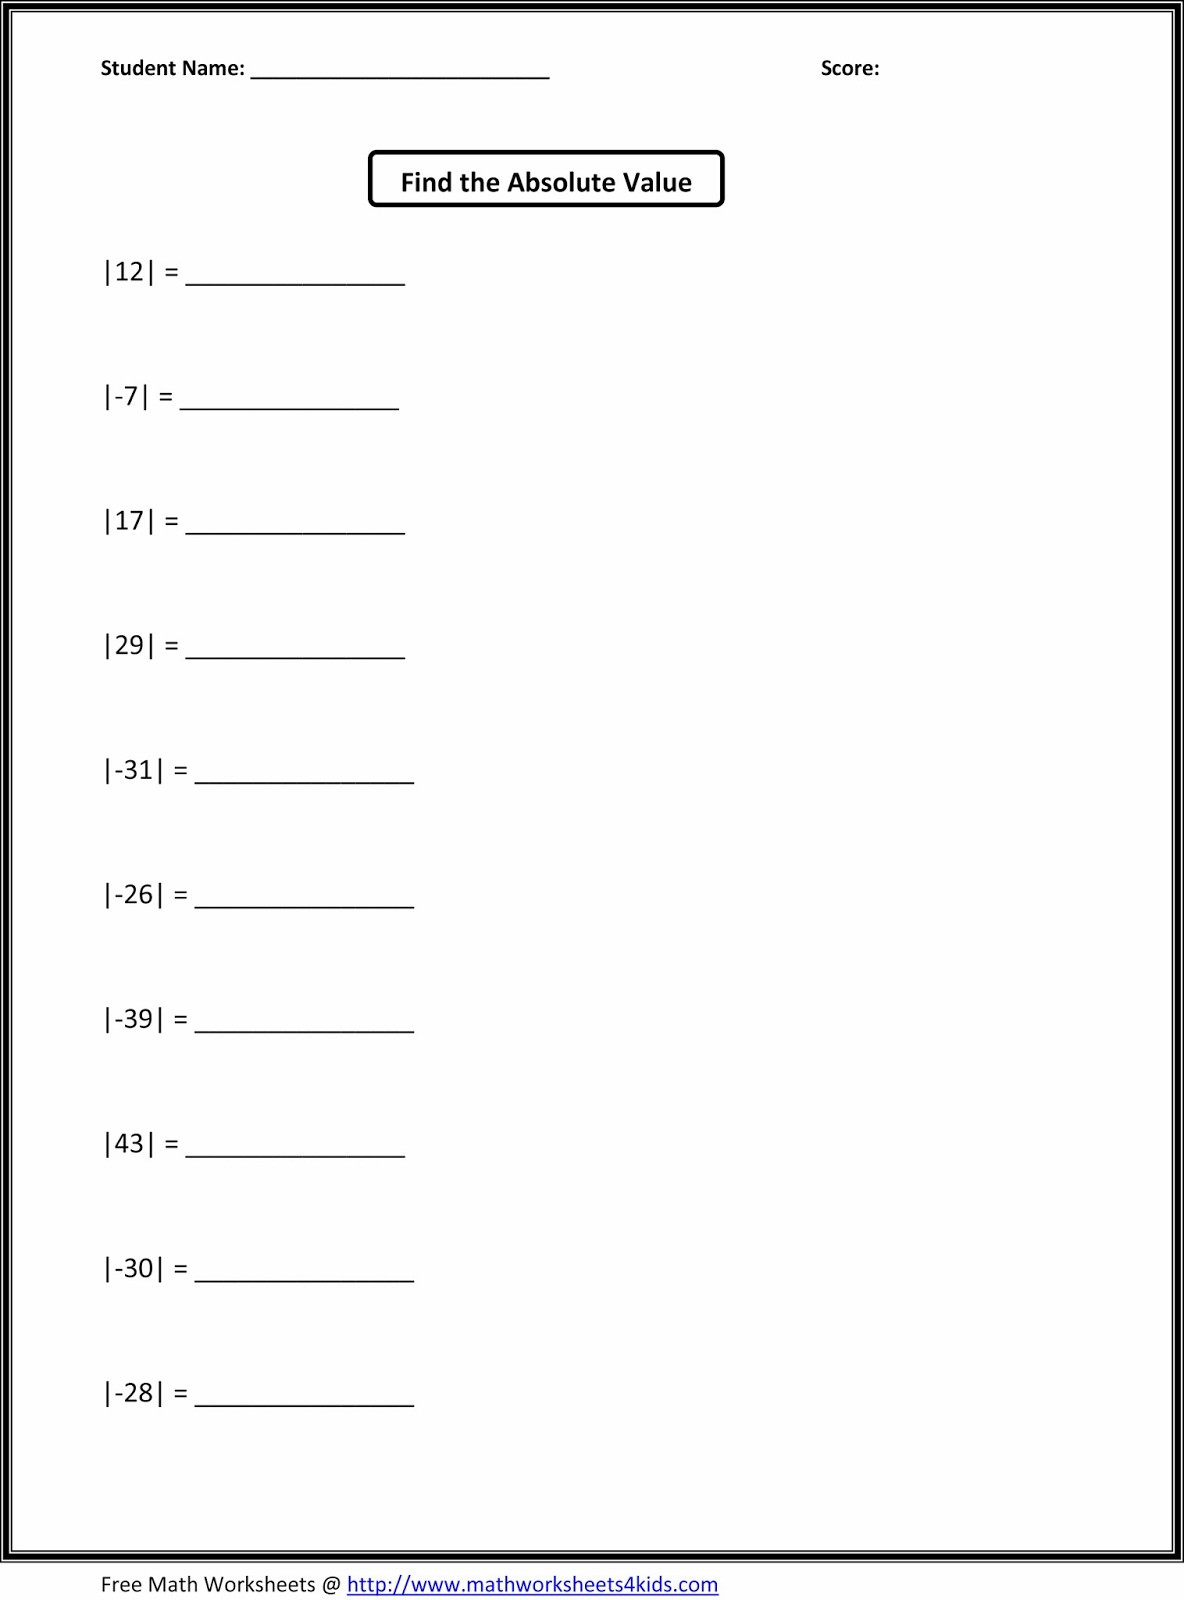 Correlative Conjunctions Worksheet 5th Grade 5th Grade Home School Lesson Thursday 2 27 Absolute